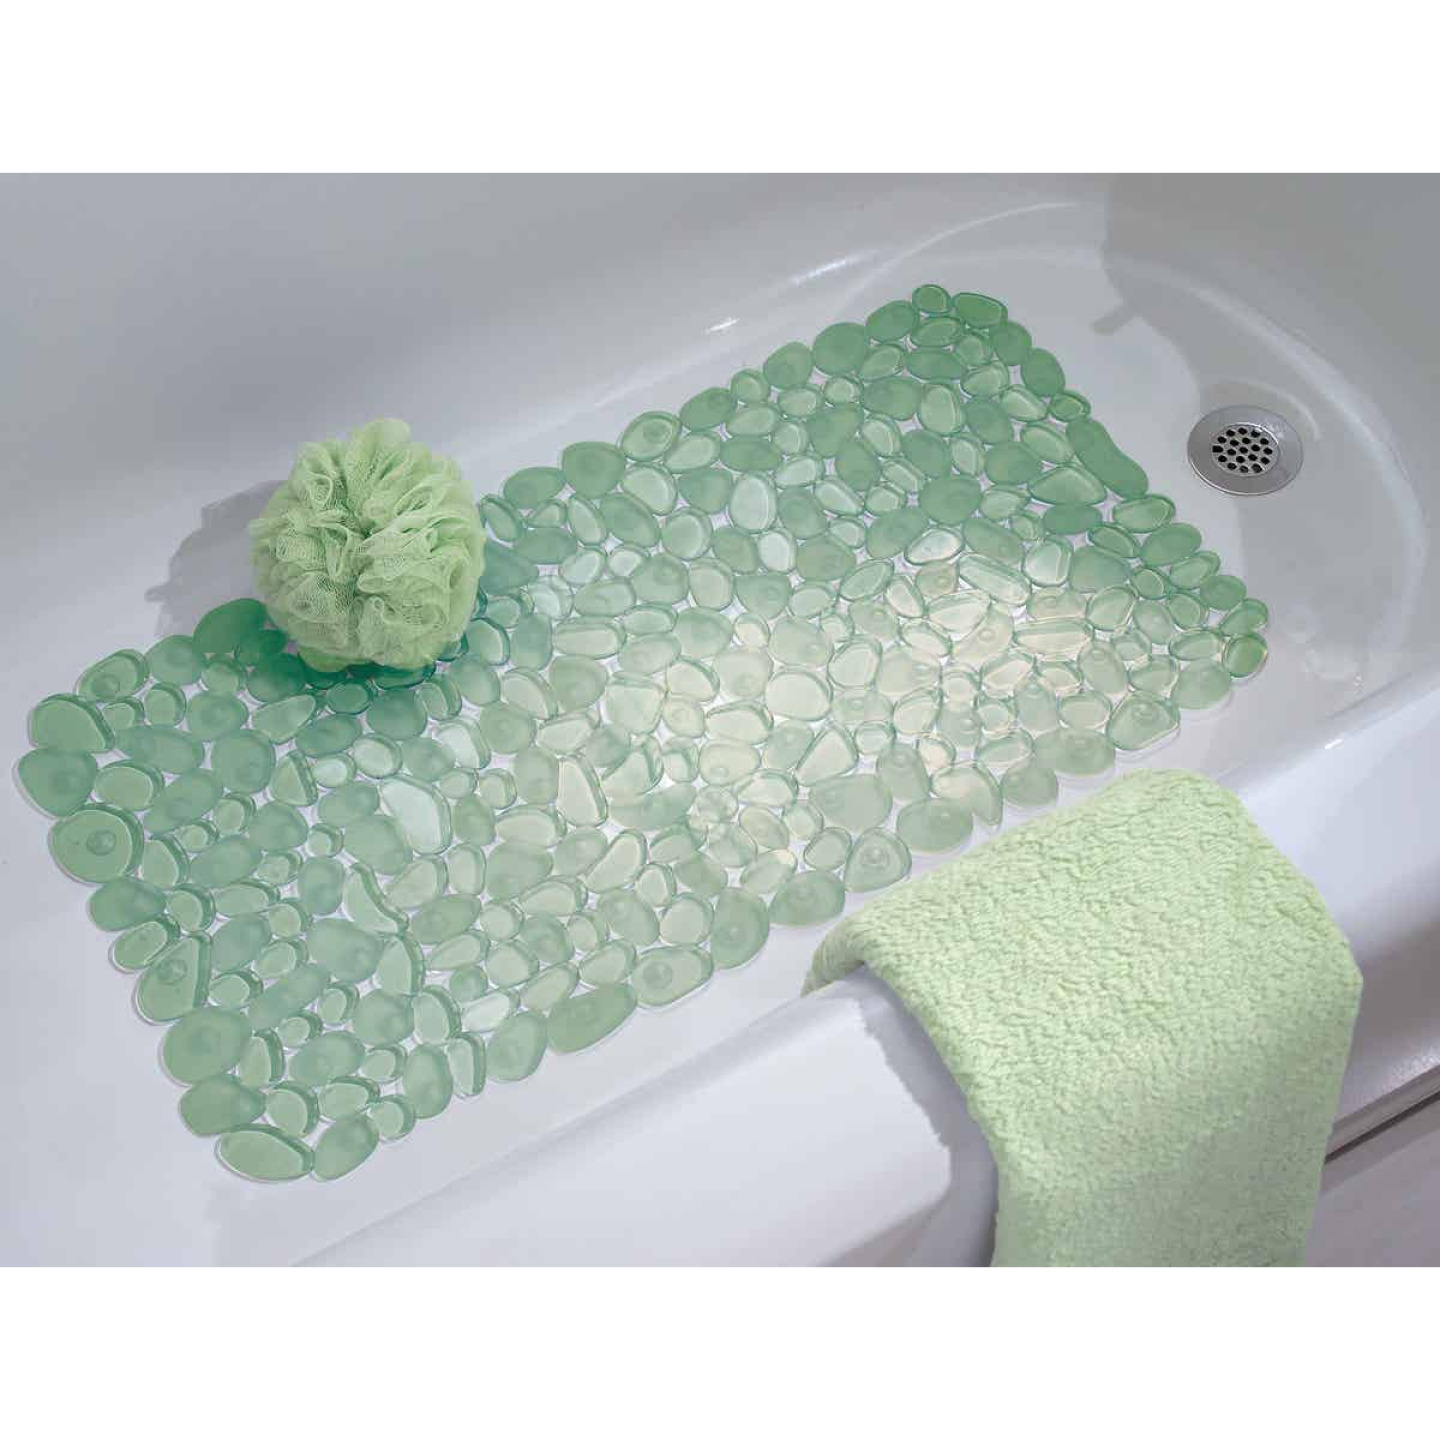 InterDesign Pebblz 13.75 In. x 26.50 In. Green Bath Mat Image 2